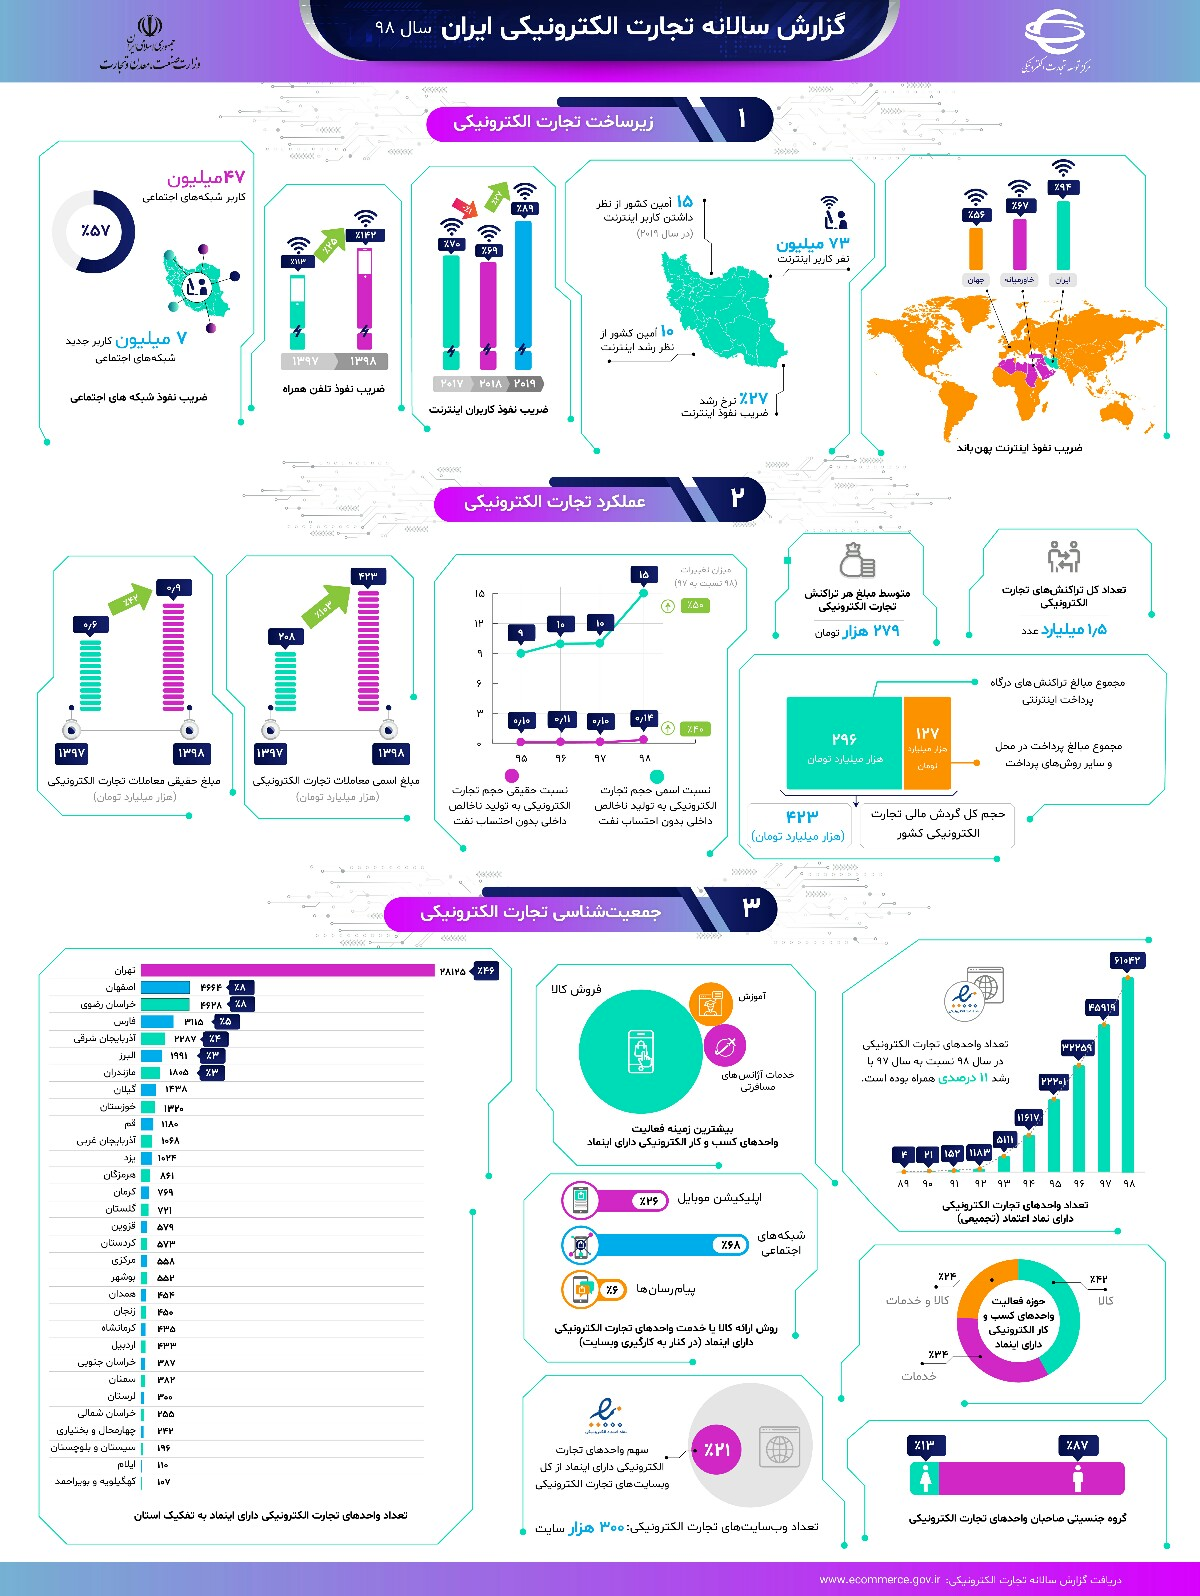 1611749044 434 The volume of e commerce in Iran in the first half The volume of e-commerce in Iran in the first half of 1999 reached 639 thousand billion tomans 10